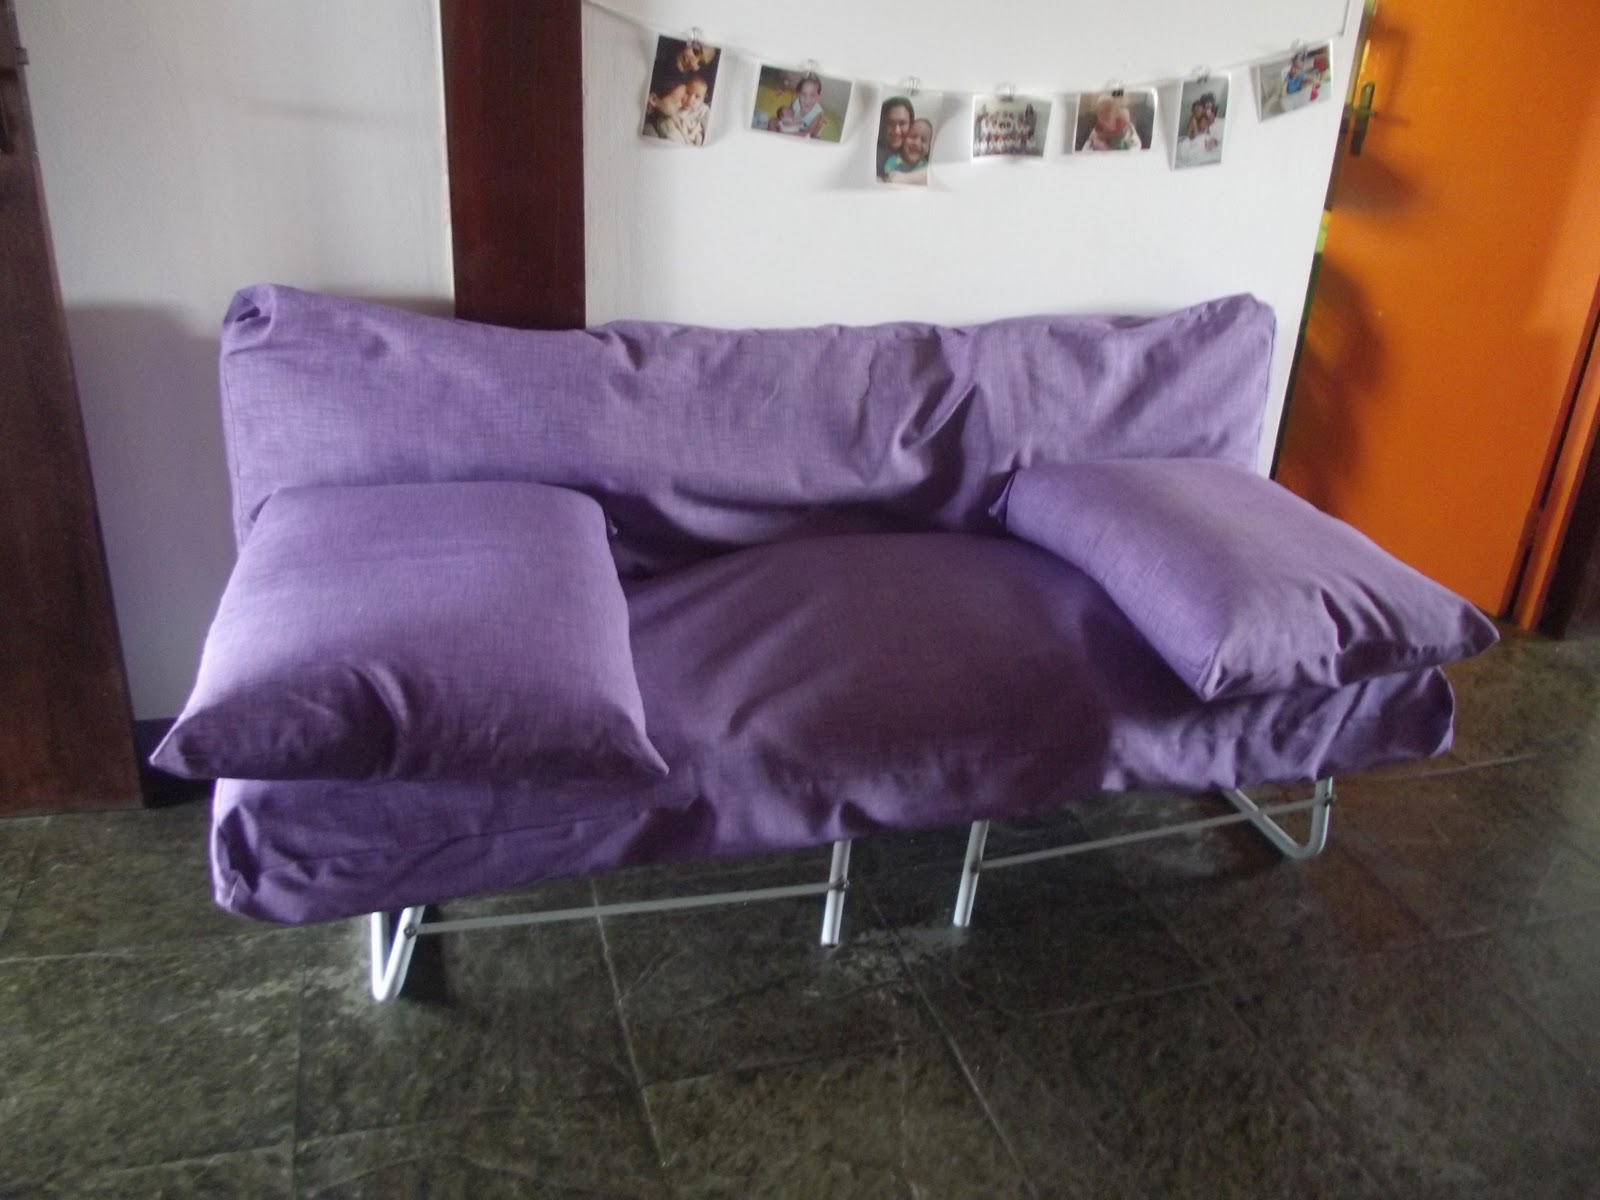 Donarteira sof reciclado for Sofa reciclado